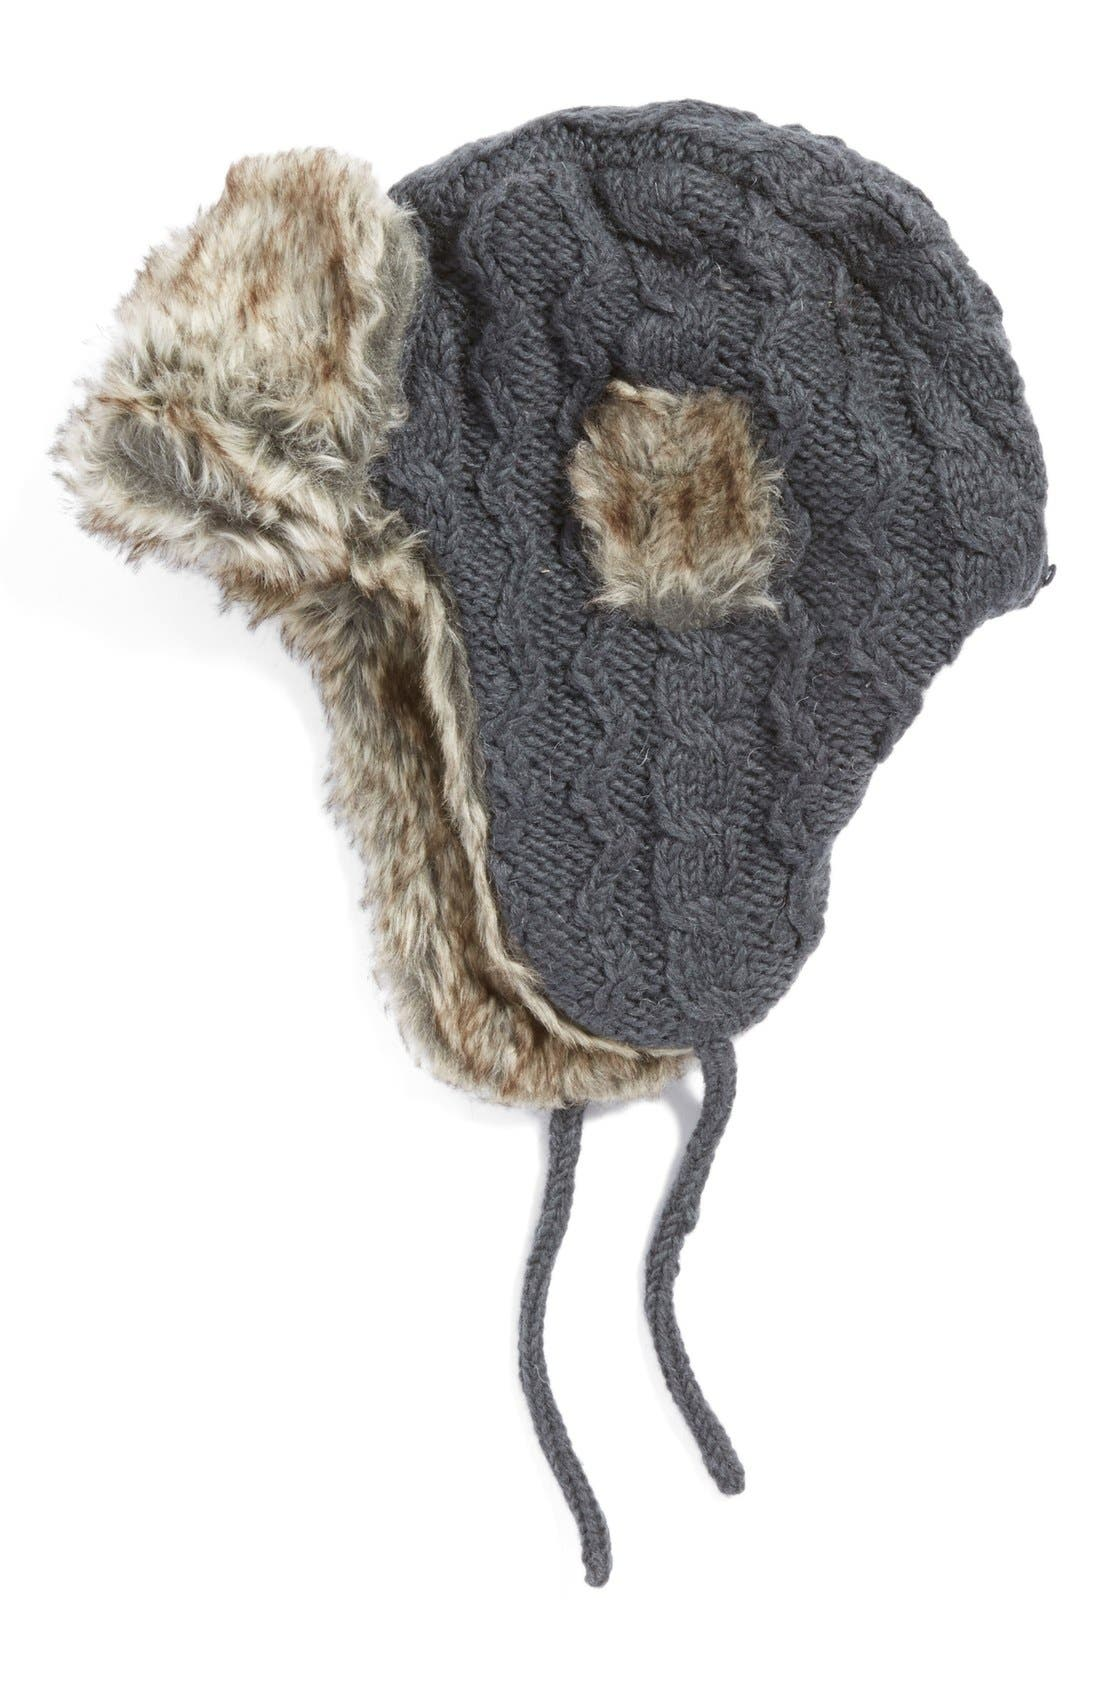 Nirvanna Designs Cable Knit Ear Flap Hat With Faux Fur Trim by Nirvanna Designs